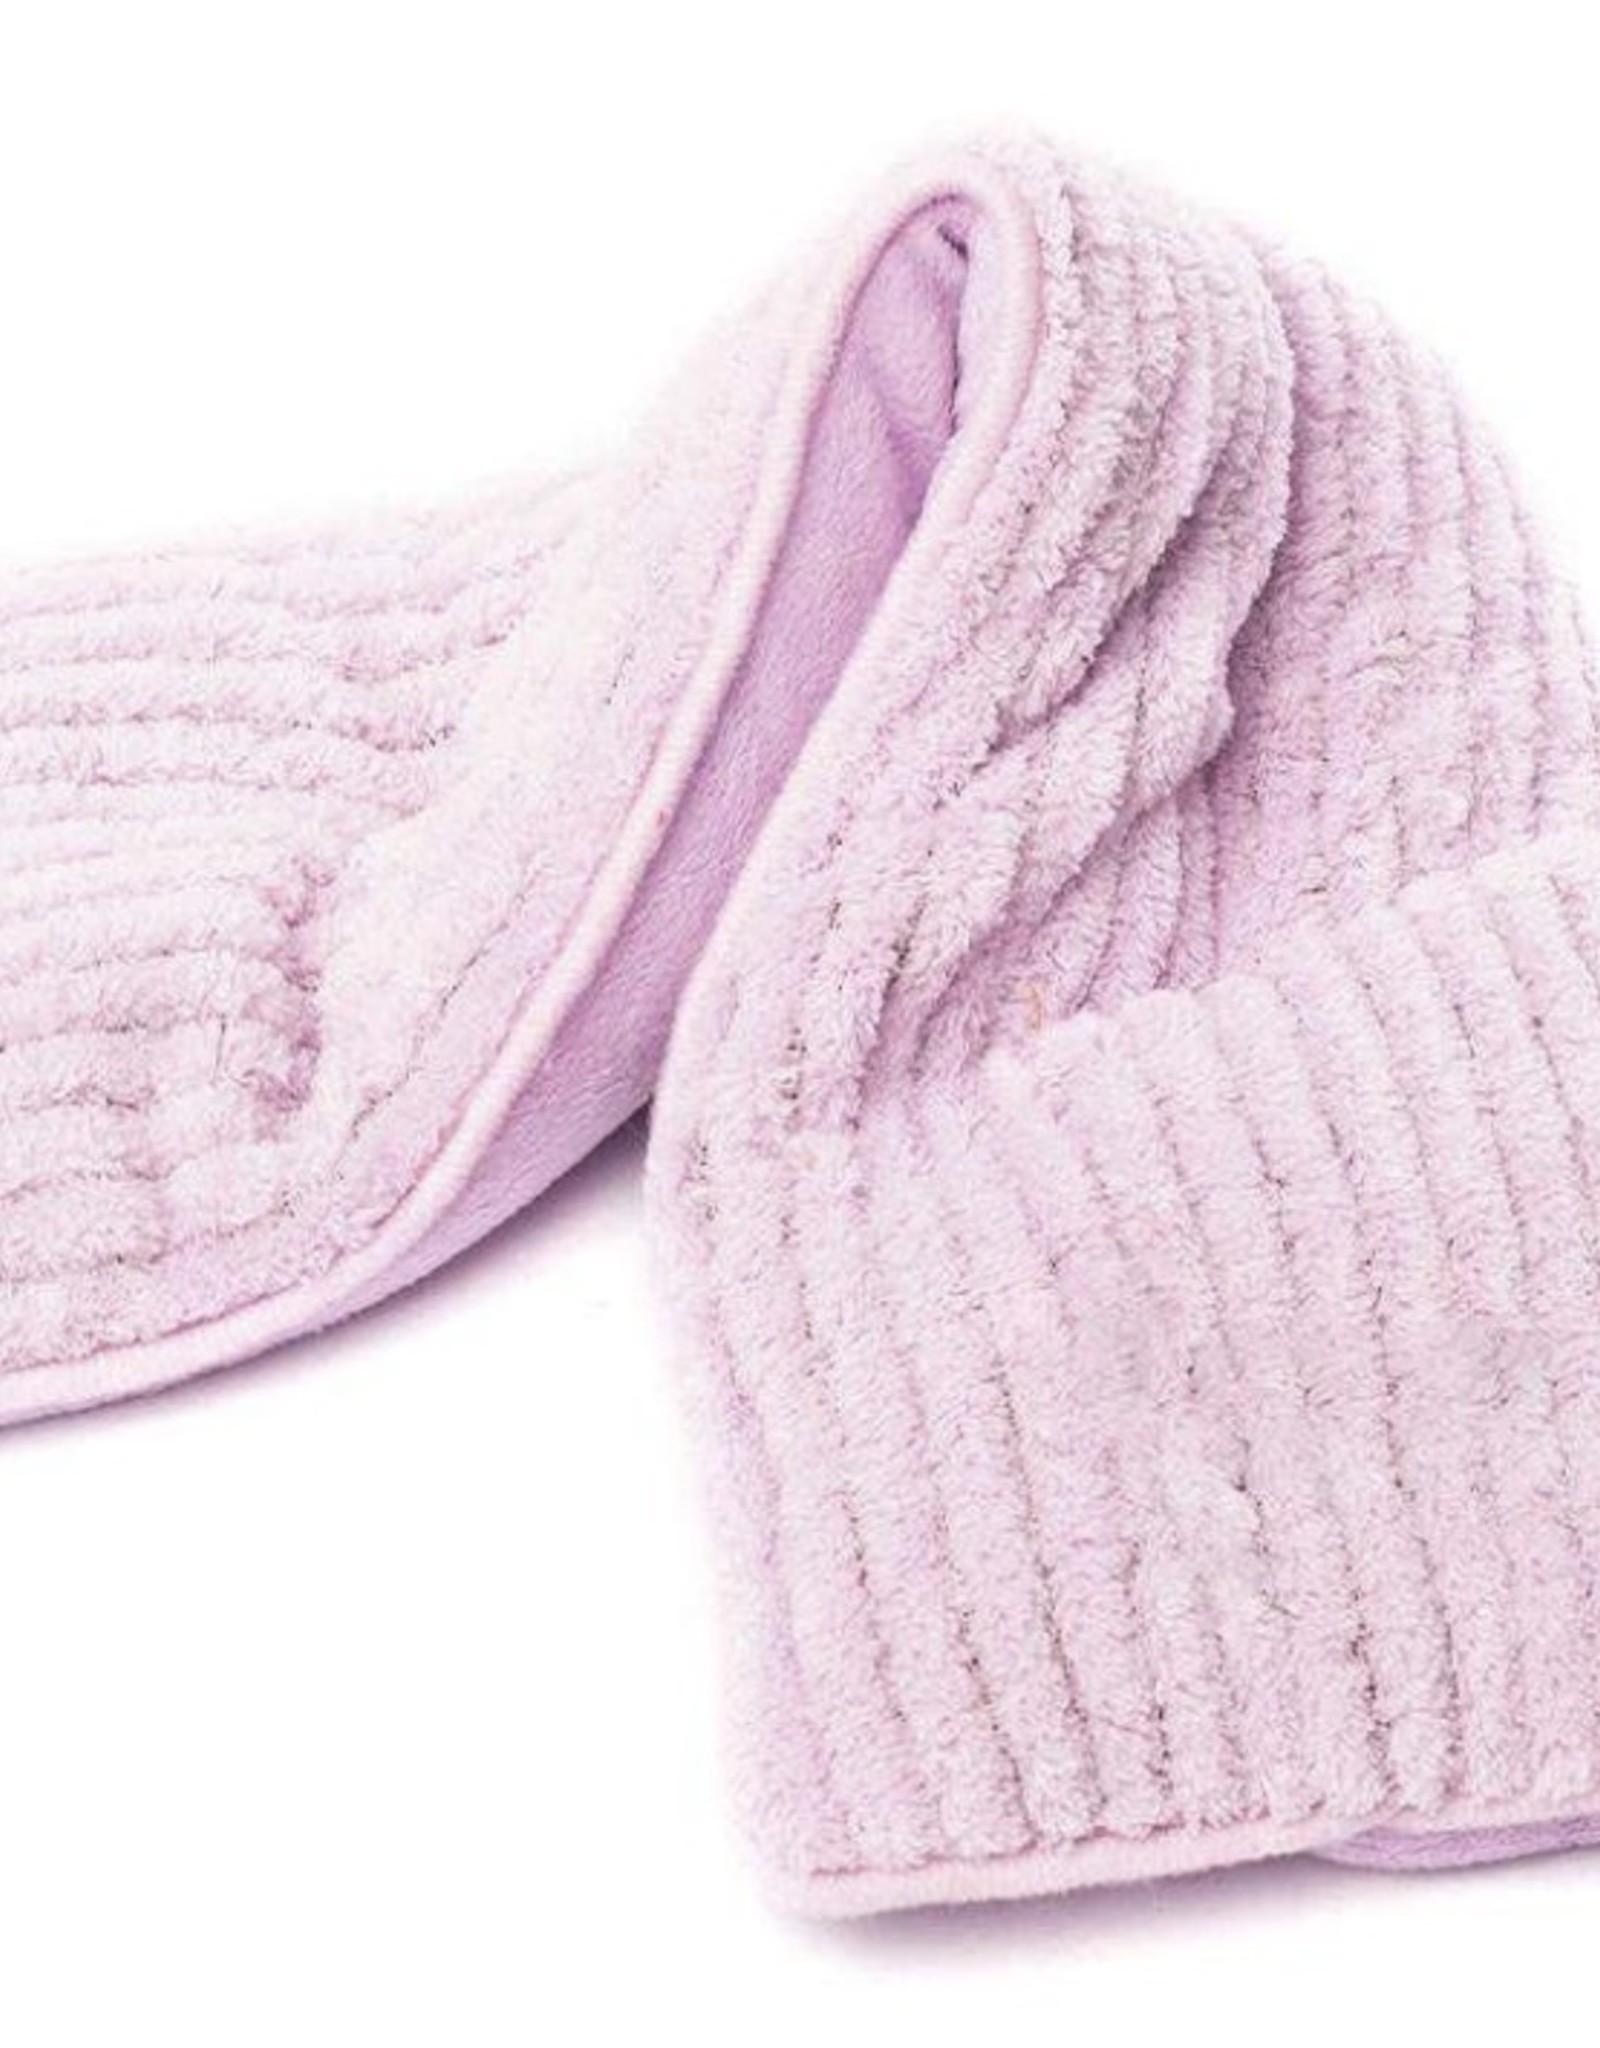 INTELEX Spa Therapy Hot Pack - Pink